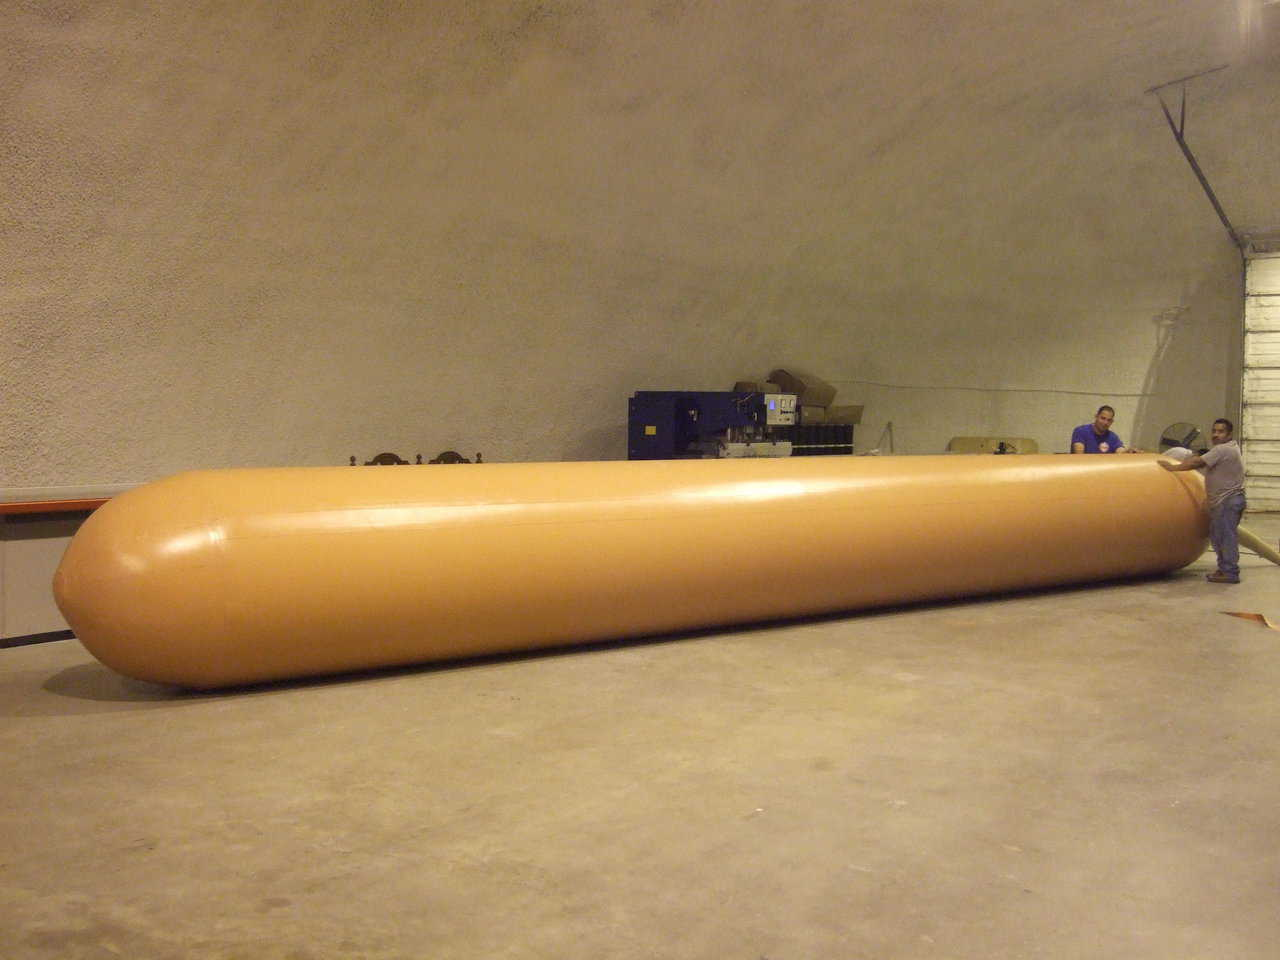 Airform being tested — This is a 10 meter long culvert Airform that is being tested at our facility in Italy, Texas.